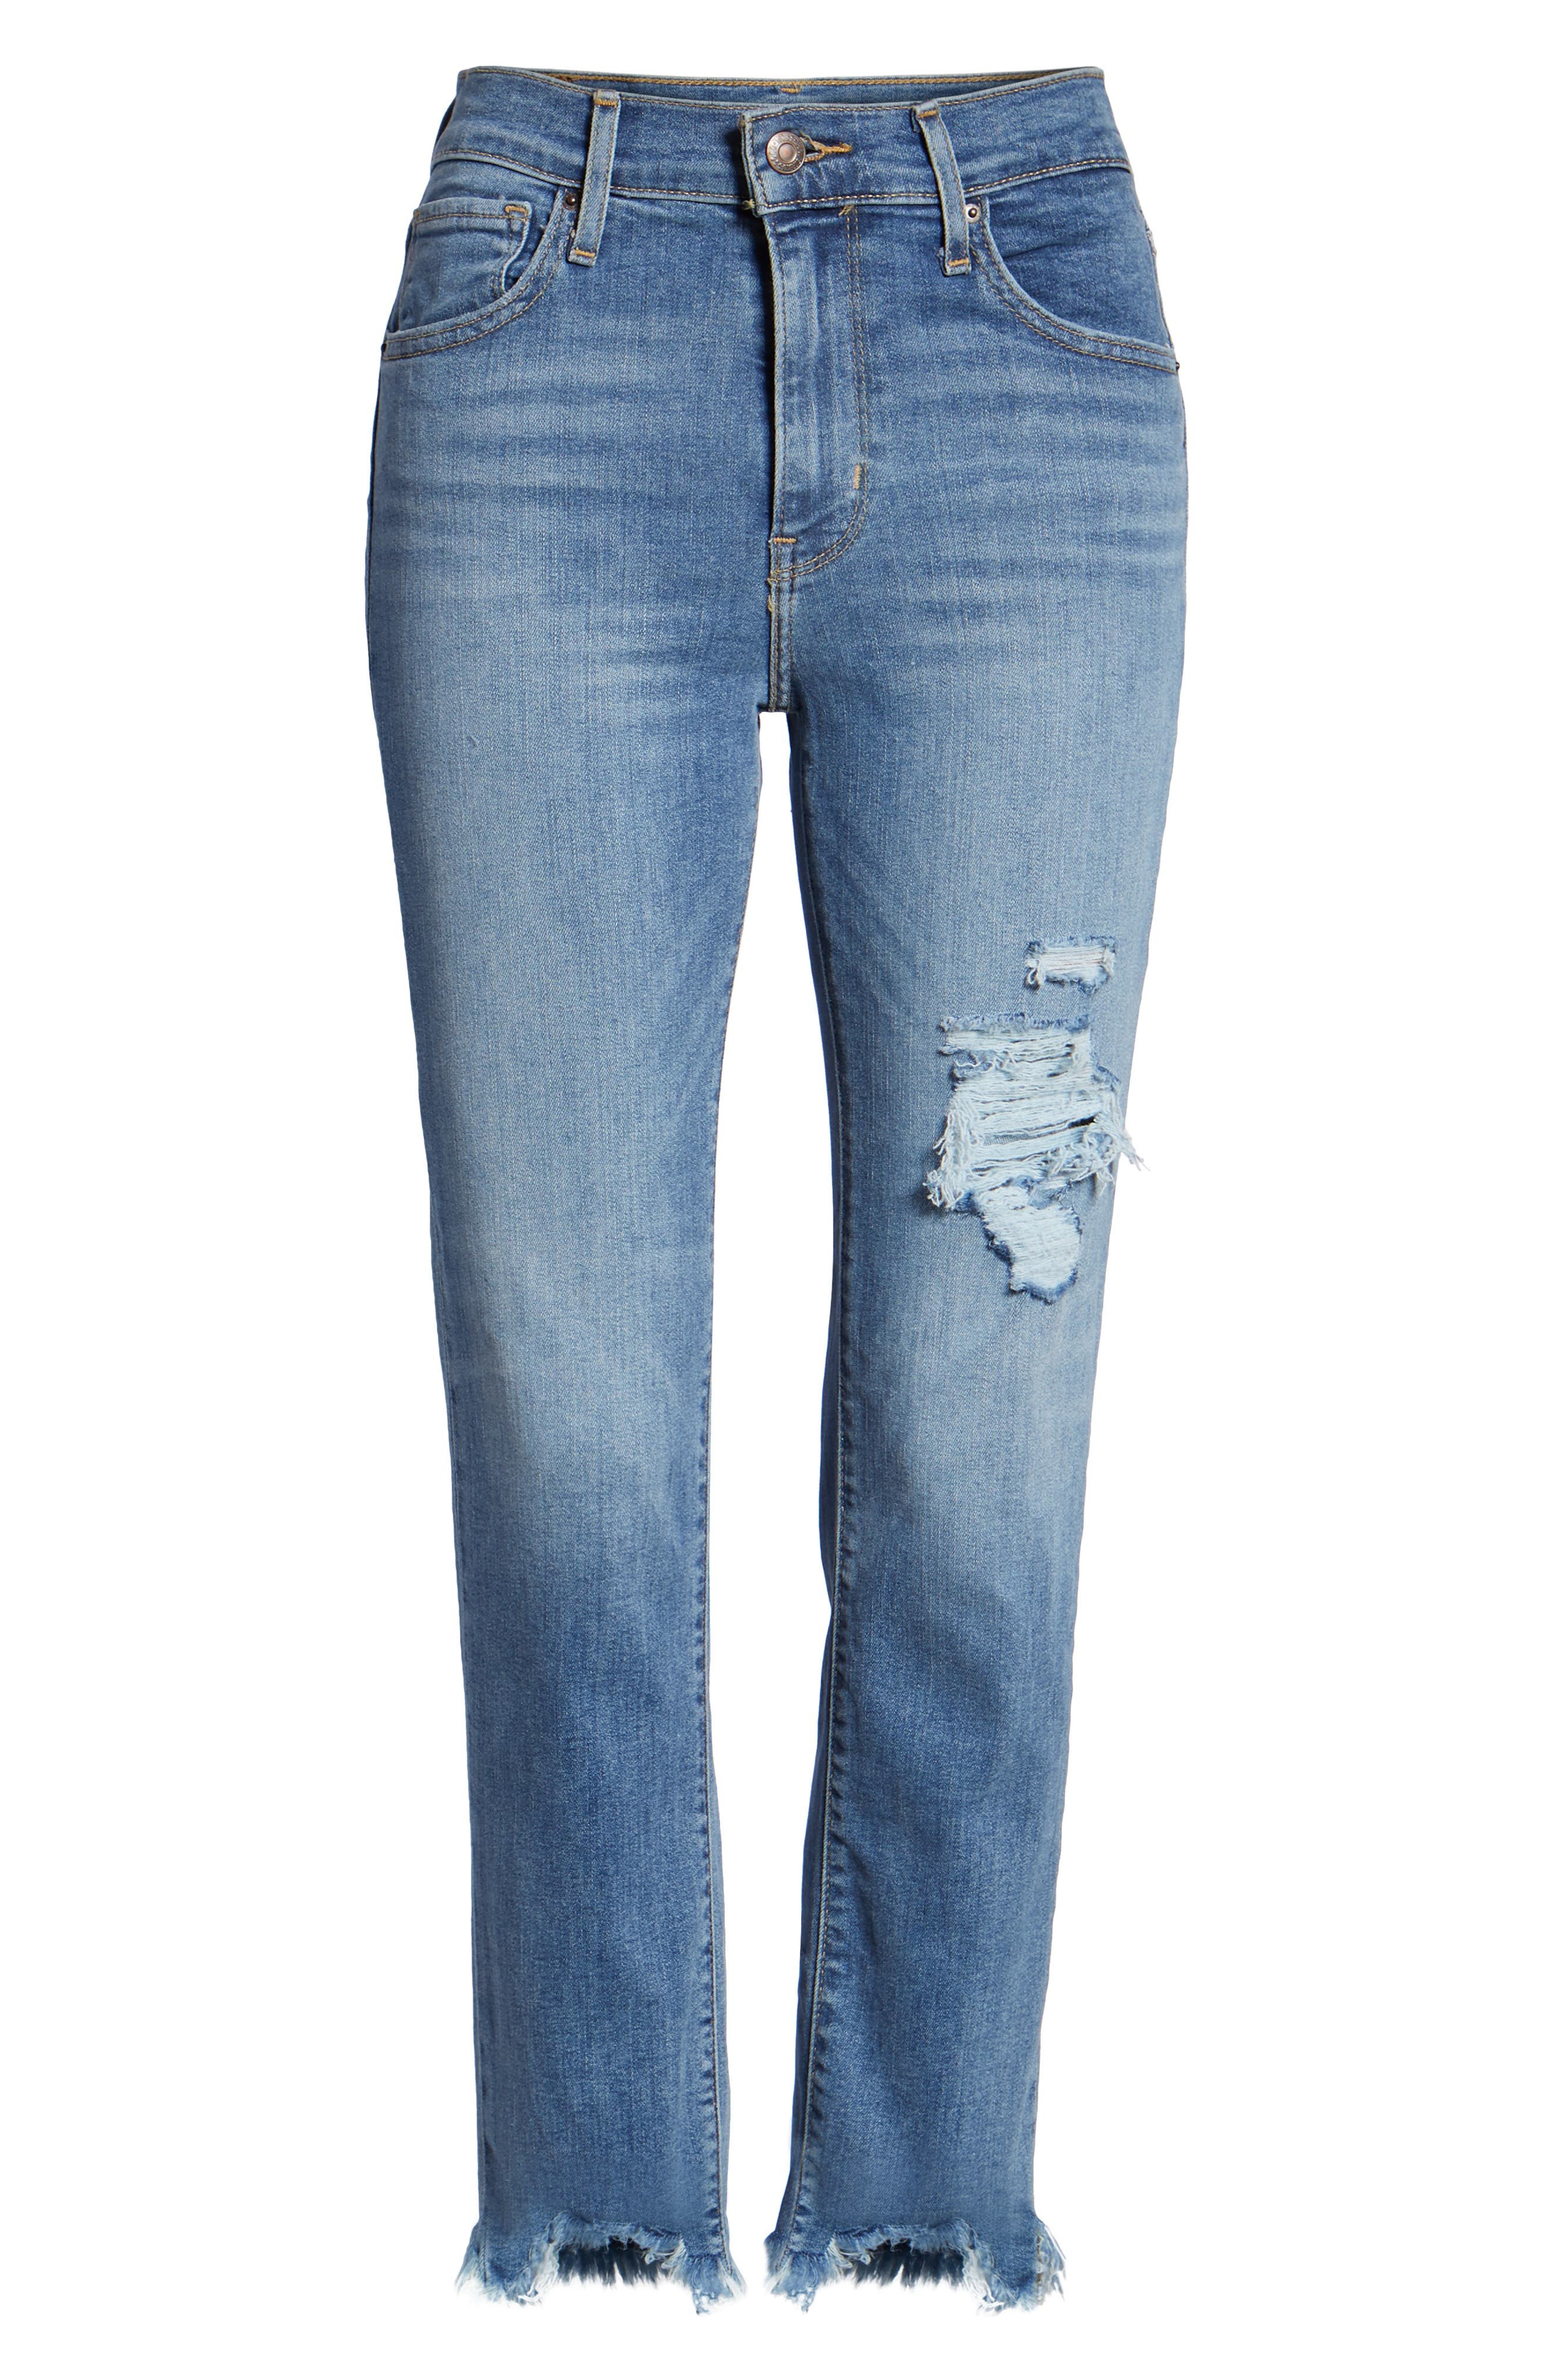 724<sup>™</sup> Ripped High Waist Raw Edge Crop Jeans,                             Alternate thumbnail 6, color,                             420